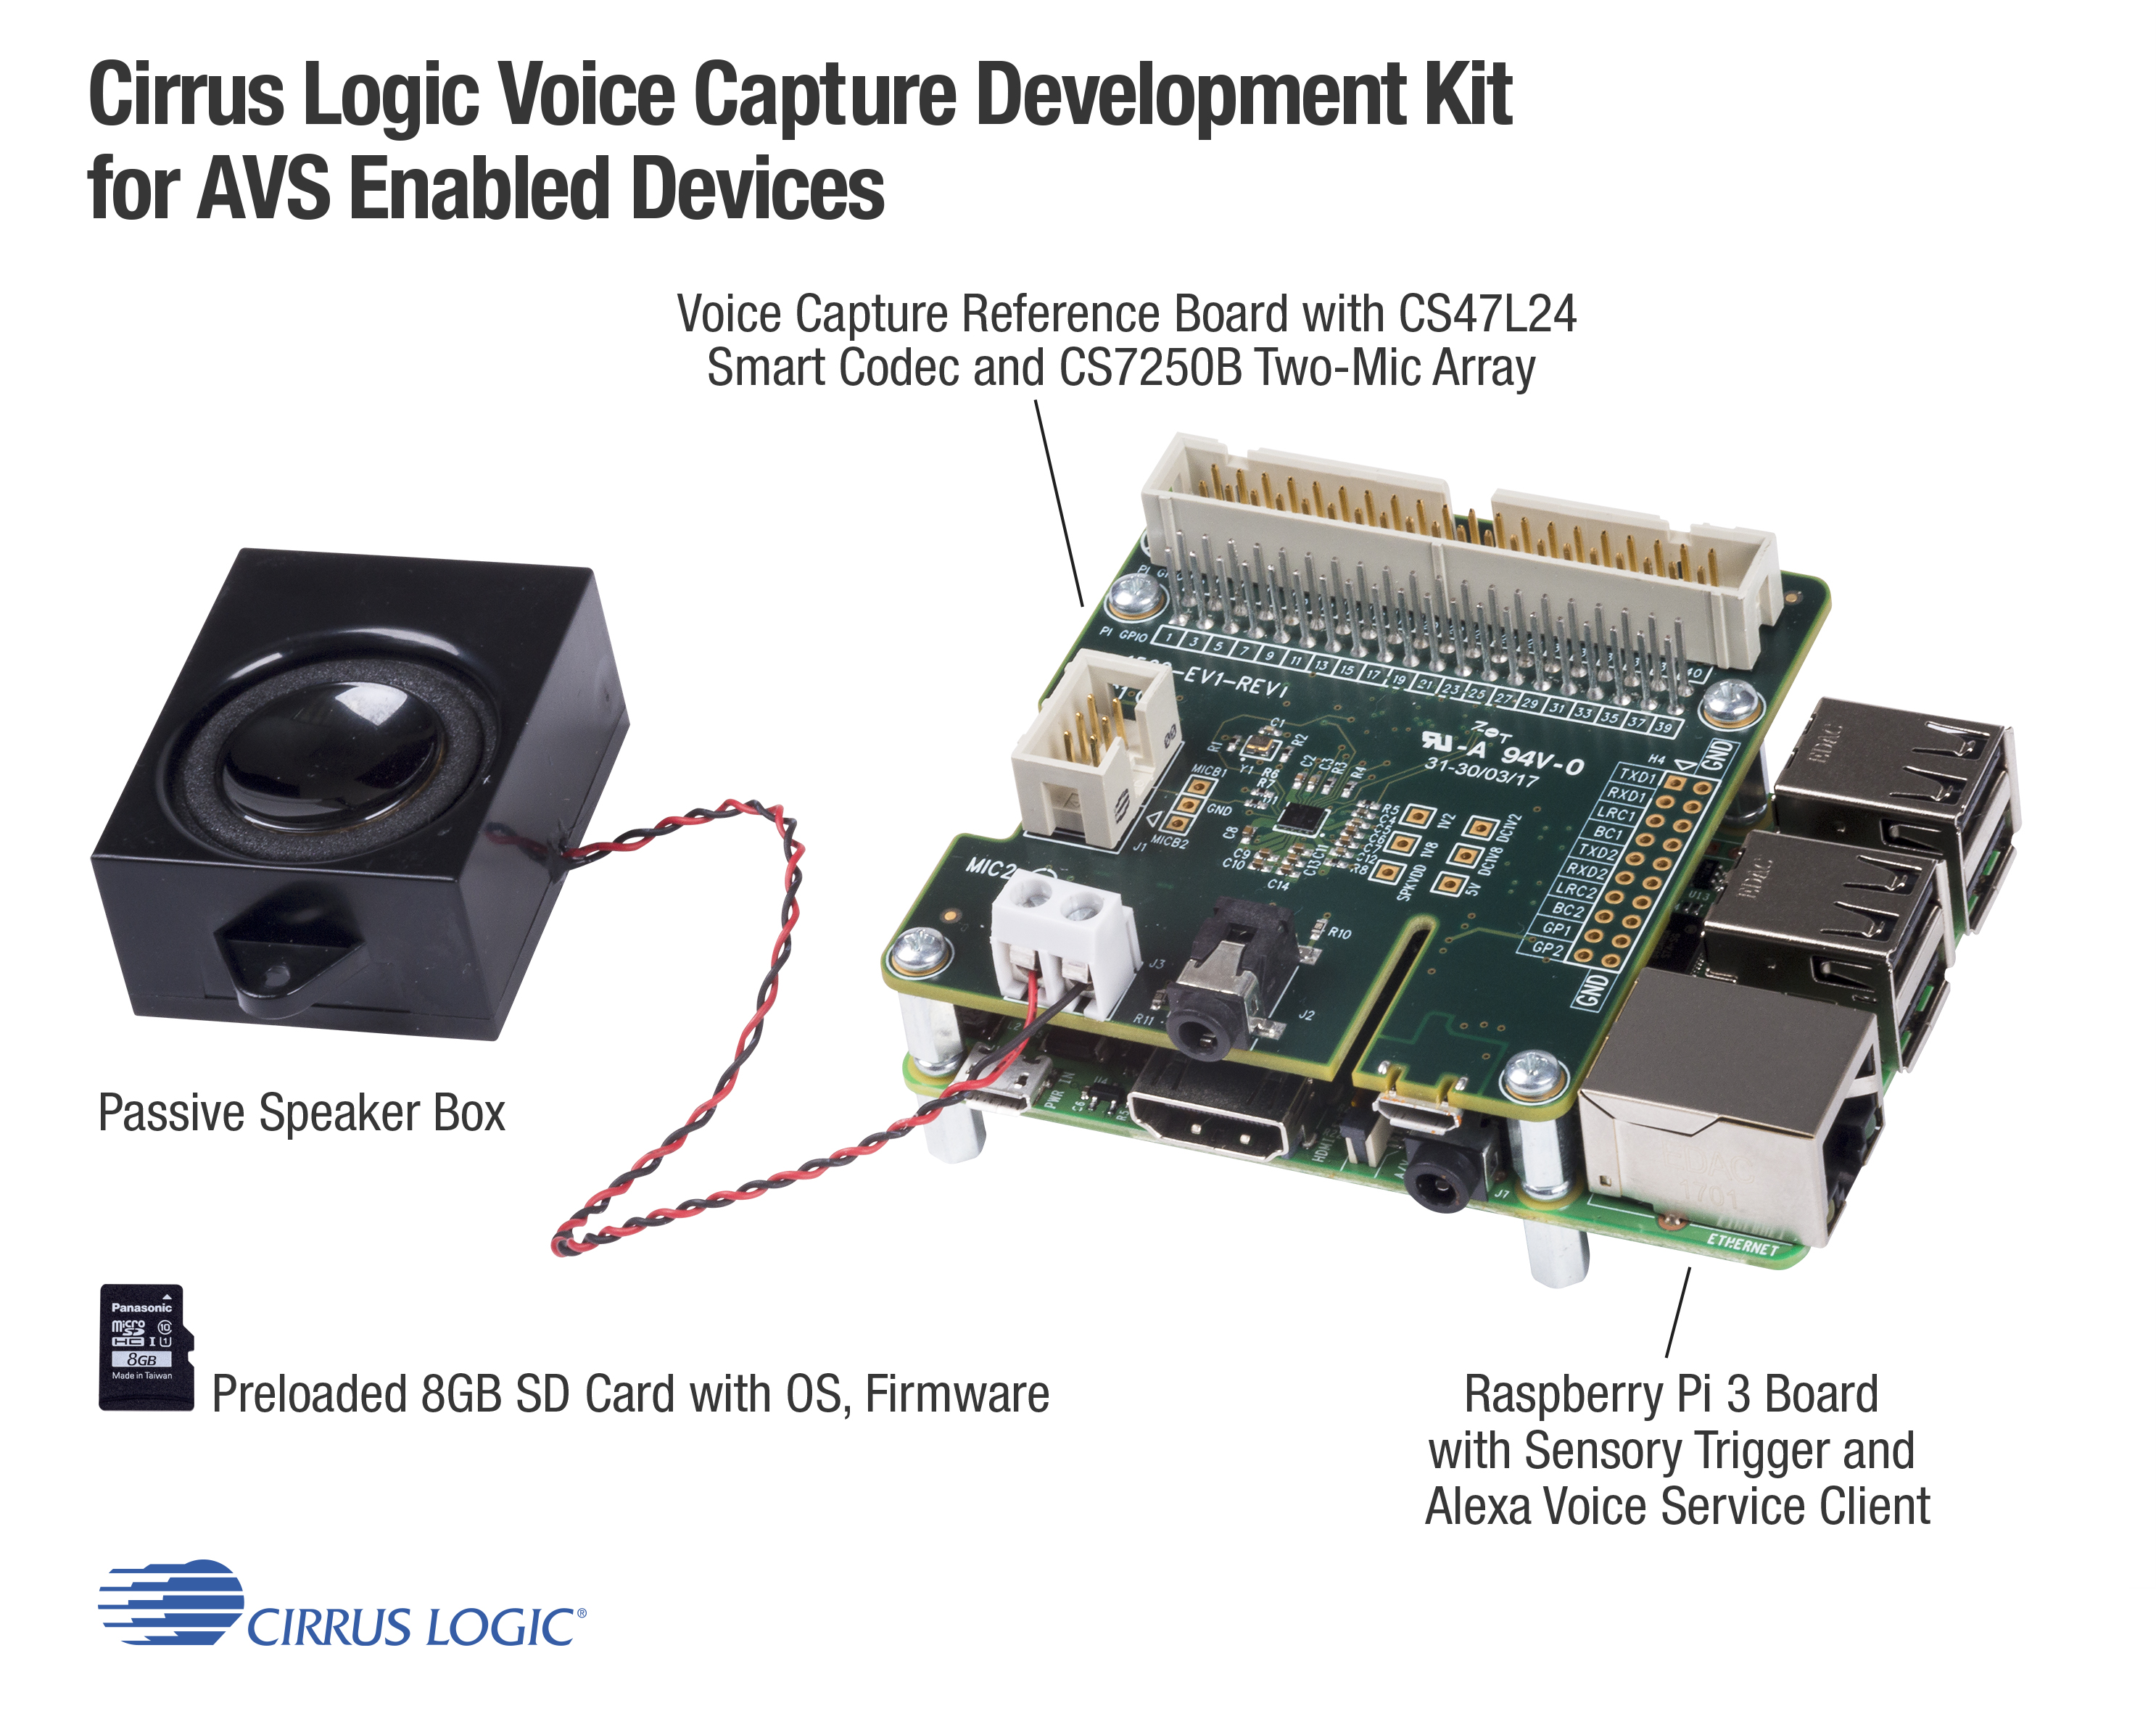 Cirrus Logic Accelerates Design of Voice-Enabled Devices with Development Kit for Amazon Alexa Voice Service